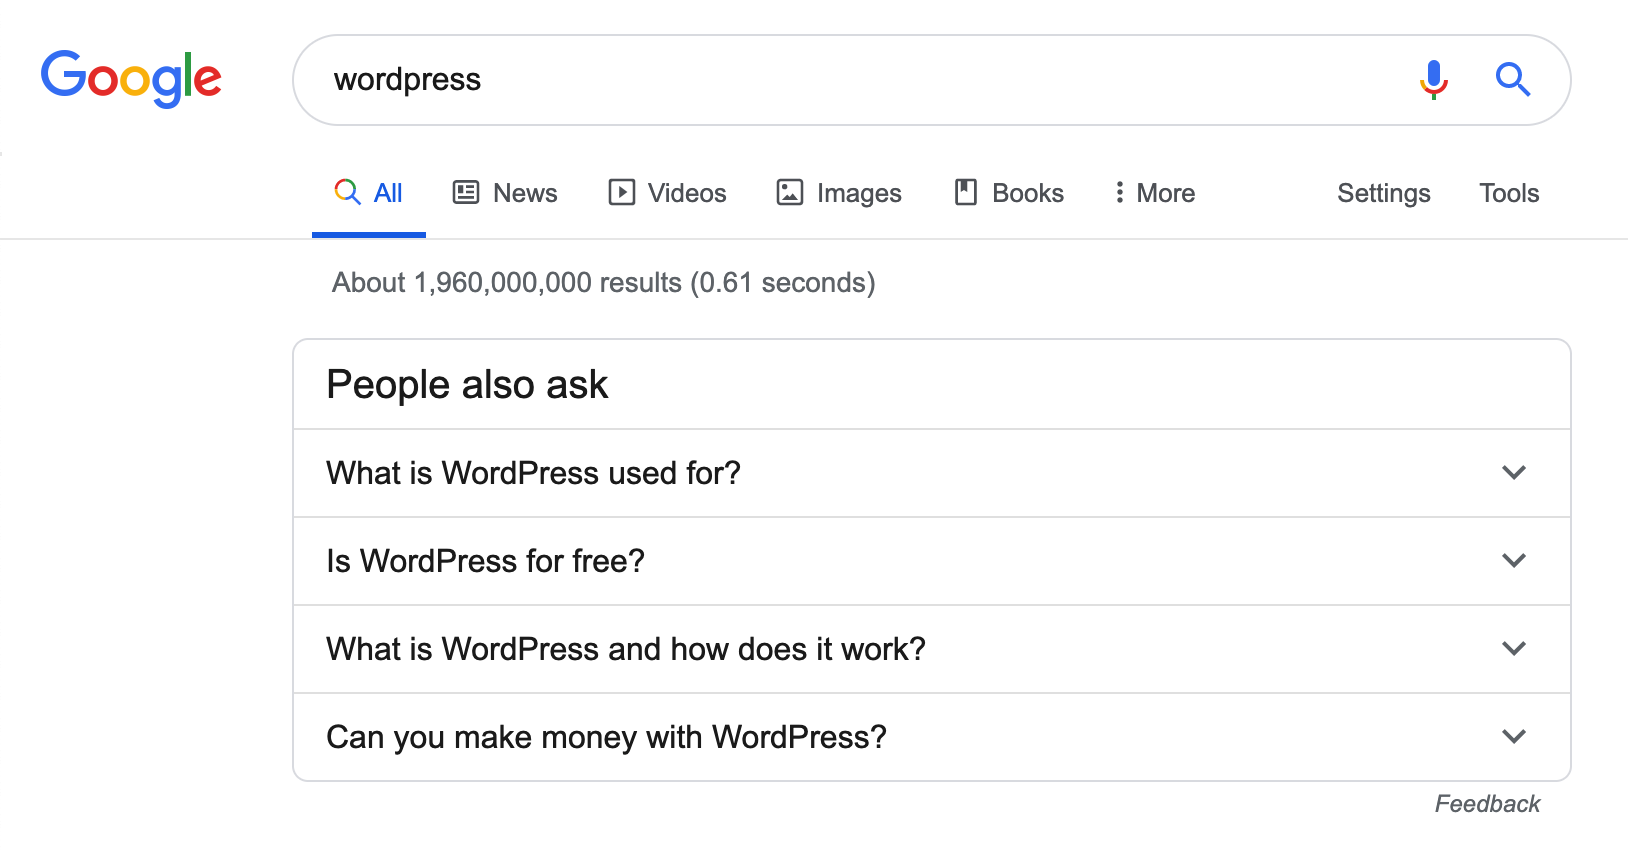 google-wordpress-related-questions